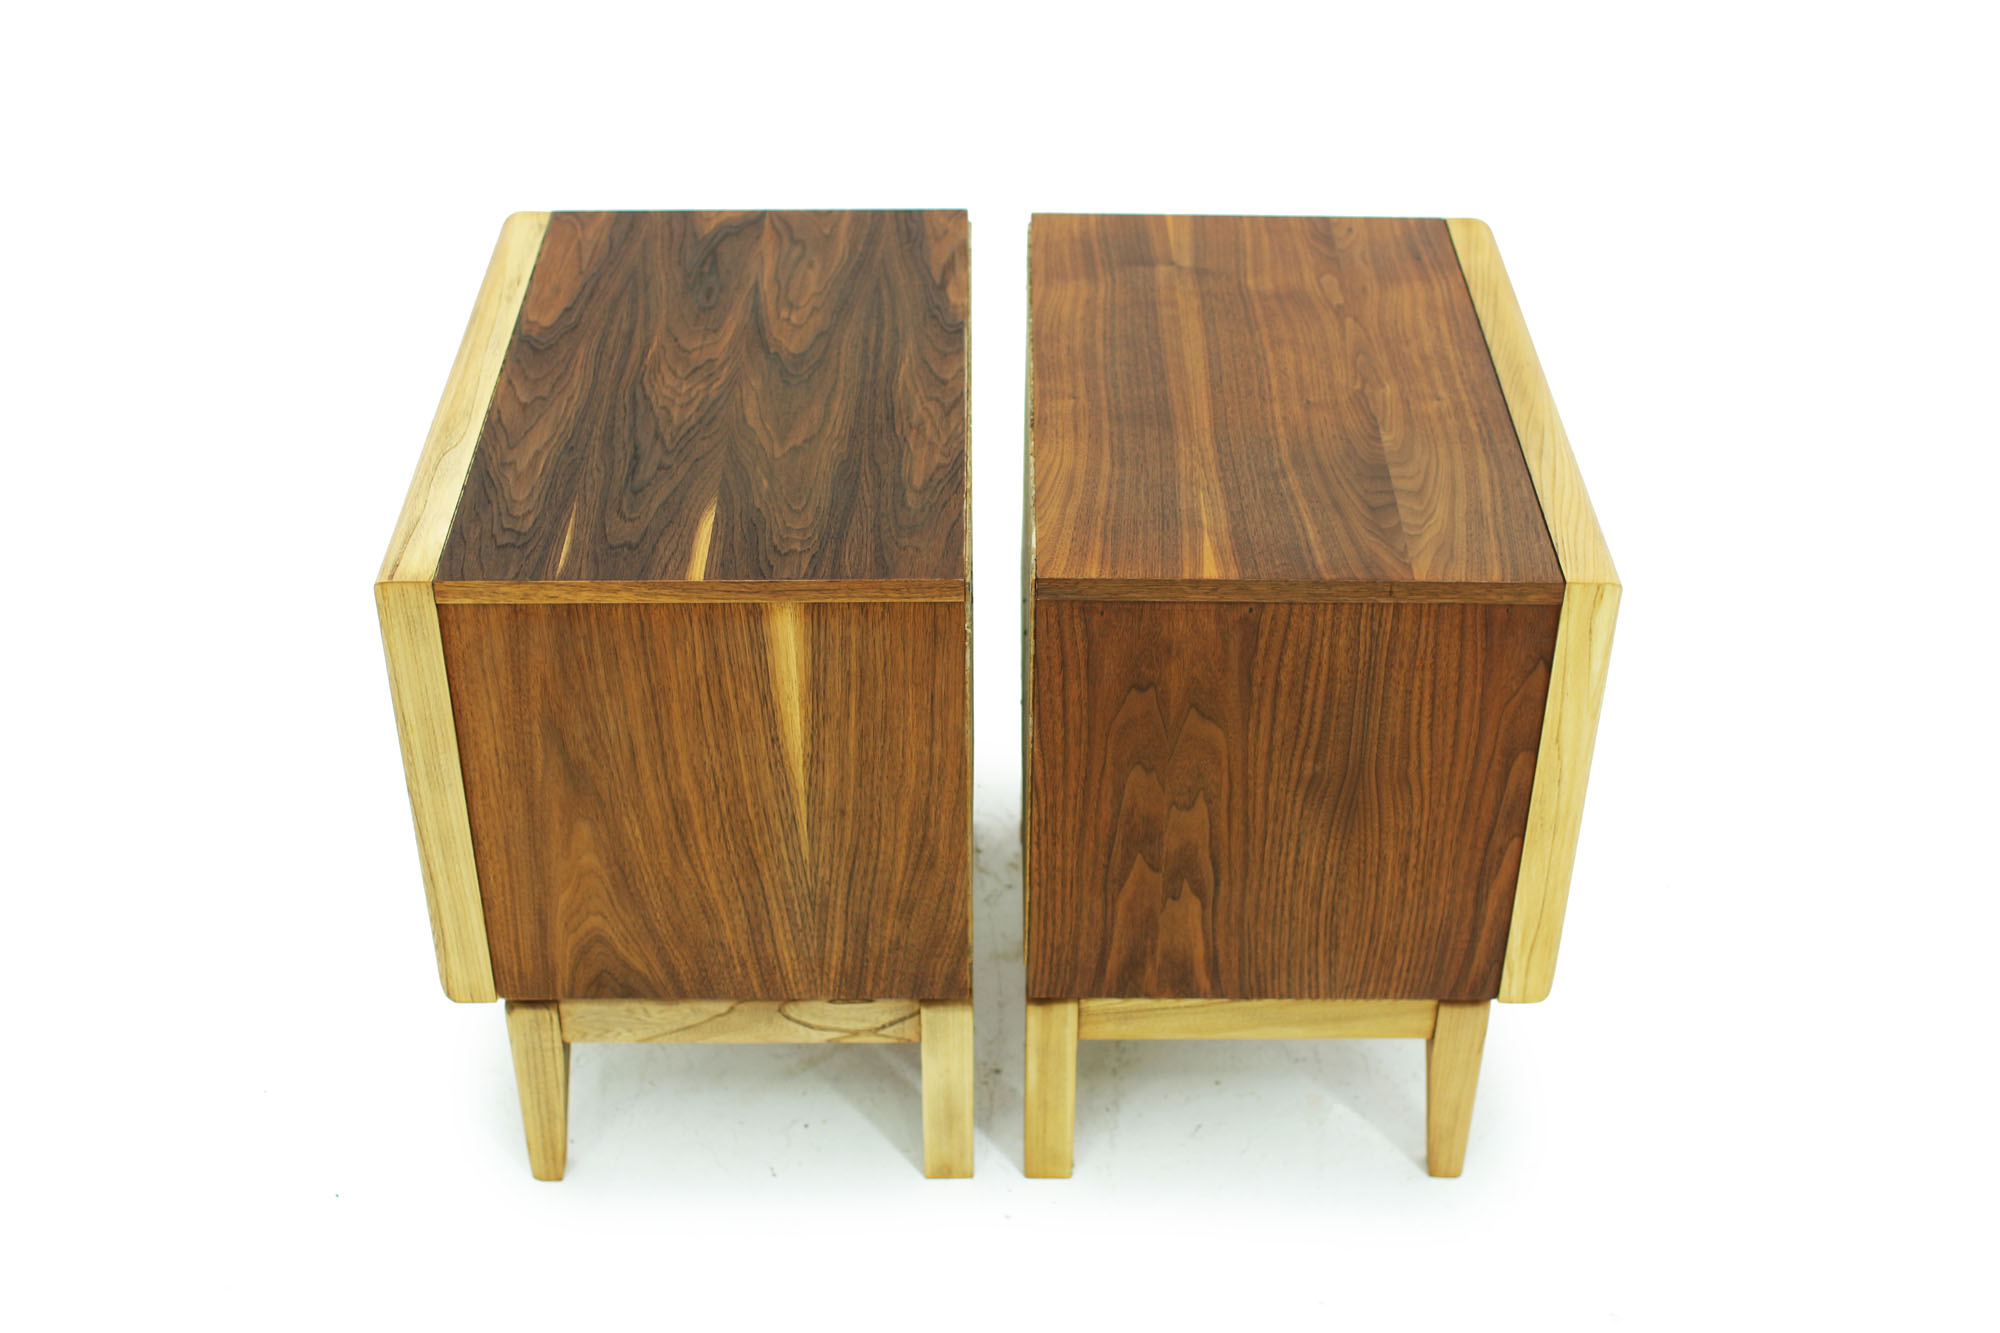 Pair of Walnut MCM Nightstands with diamond pattern drawers and two tone fronts fully refinished (1).jpg